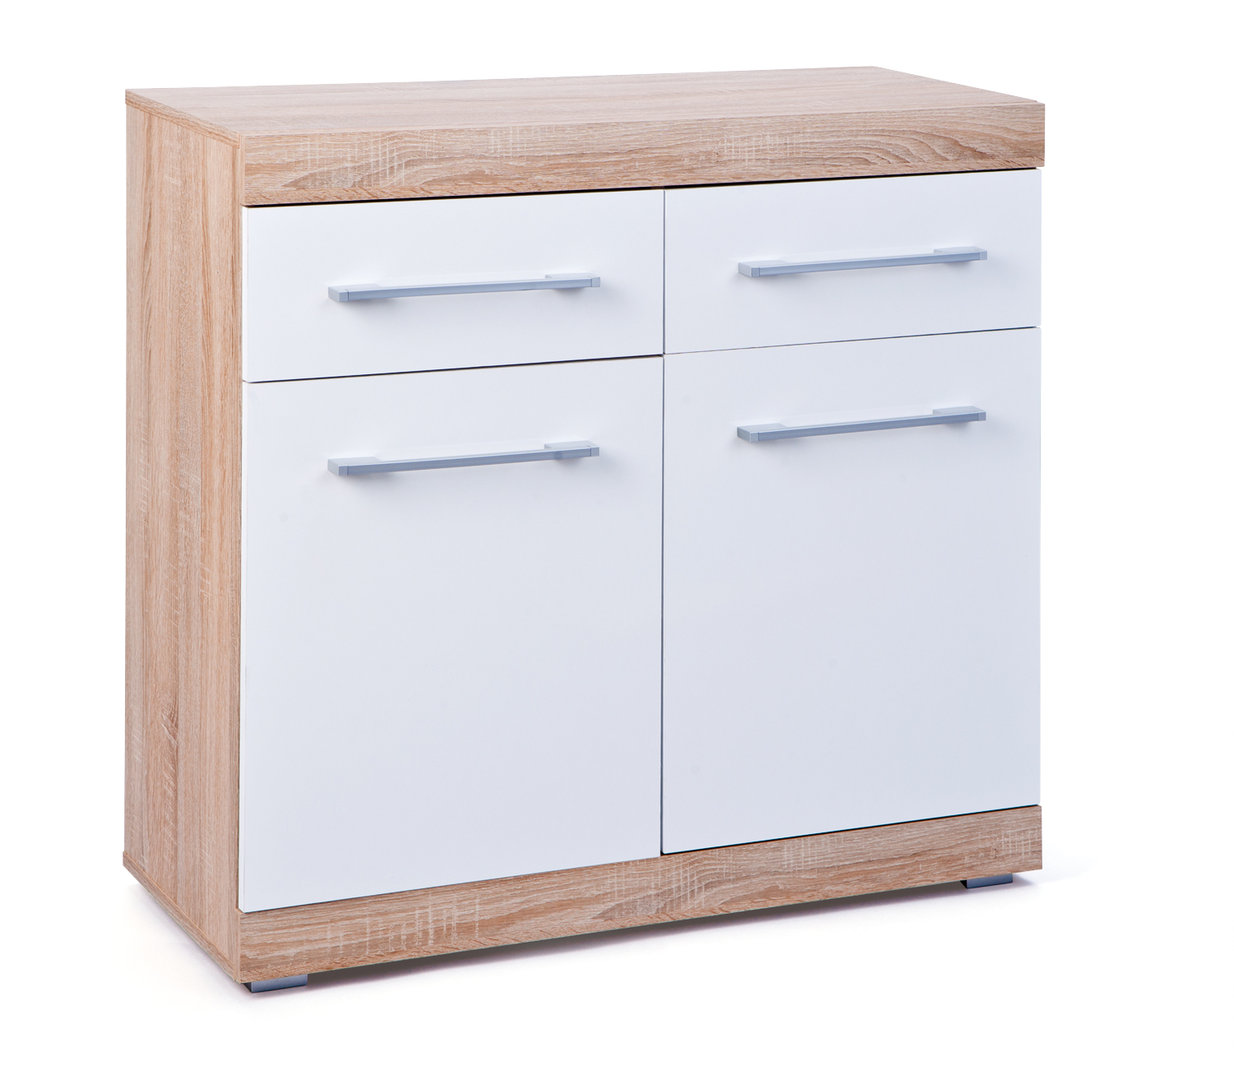 Mobile moderno sara 55 credenza design mobiletto bianco e for Mobiletto design